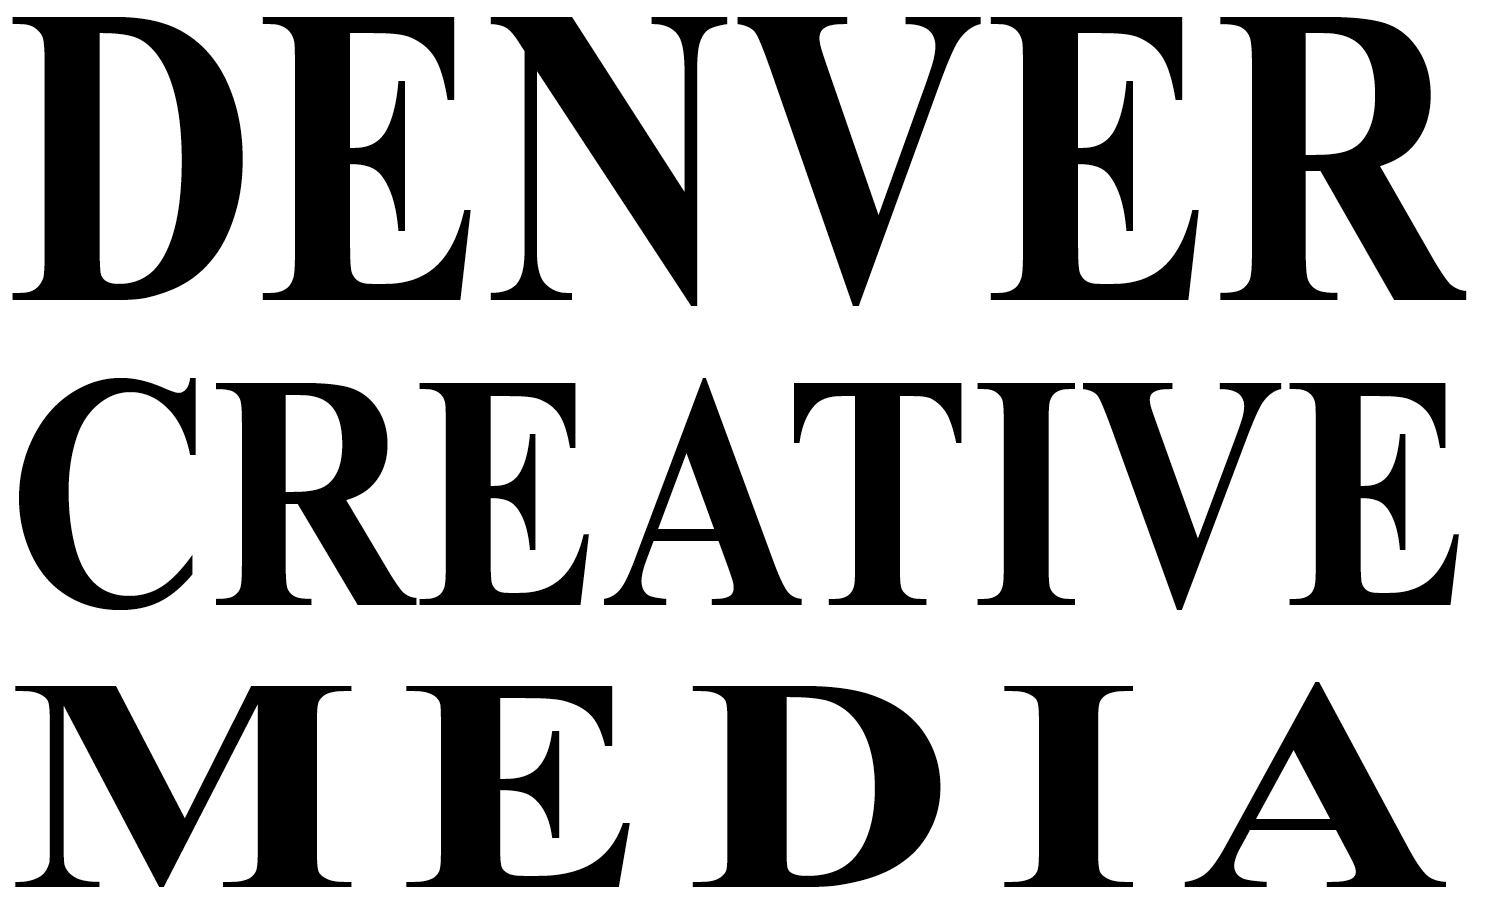 Denver Creative Media - Website Designer